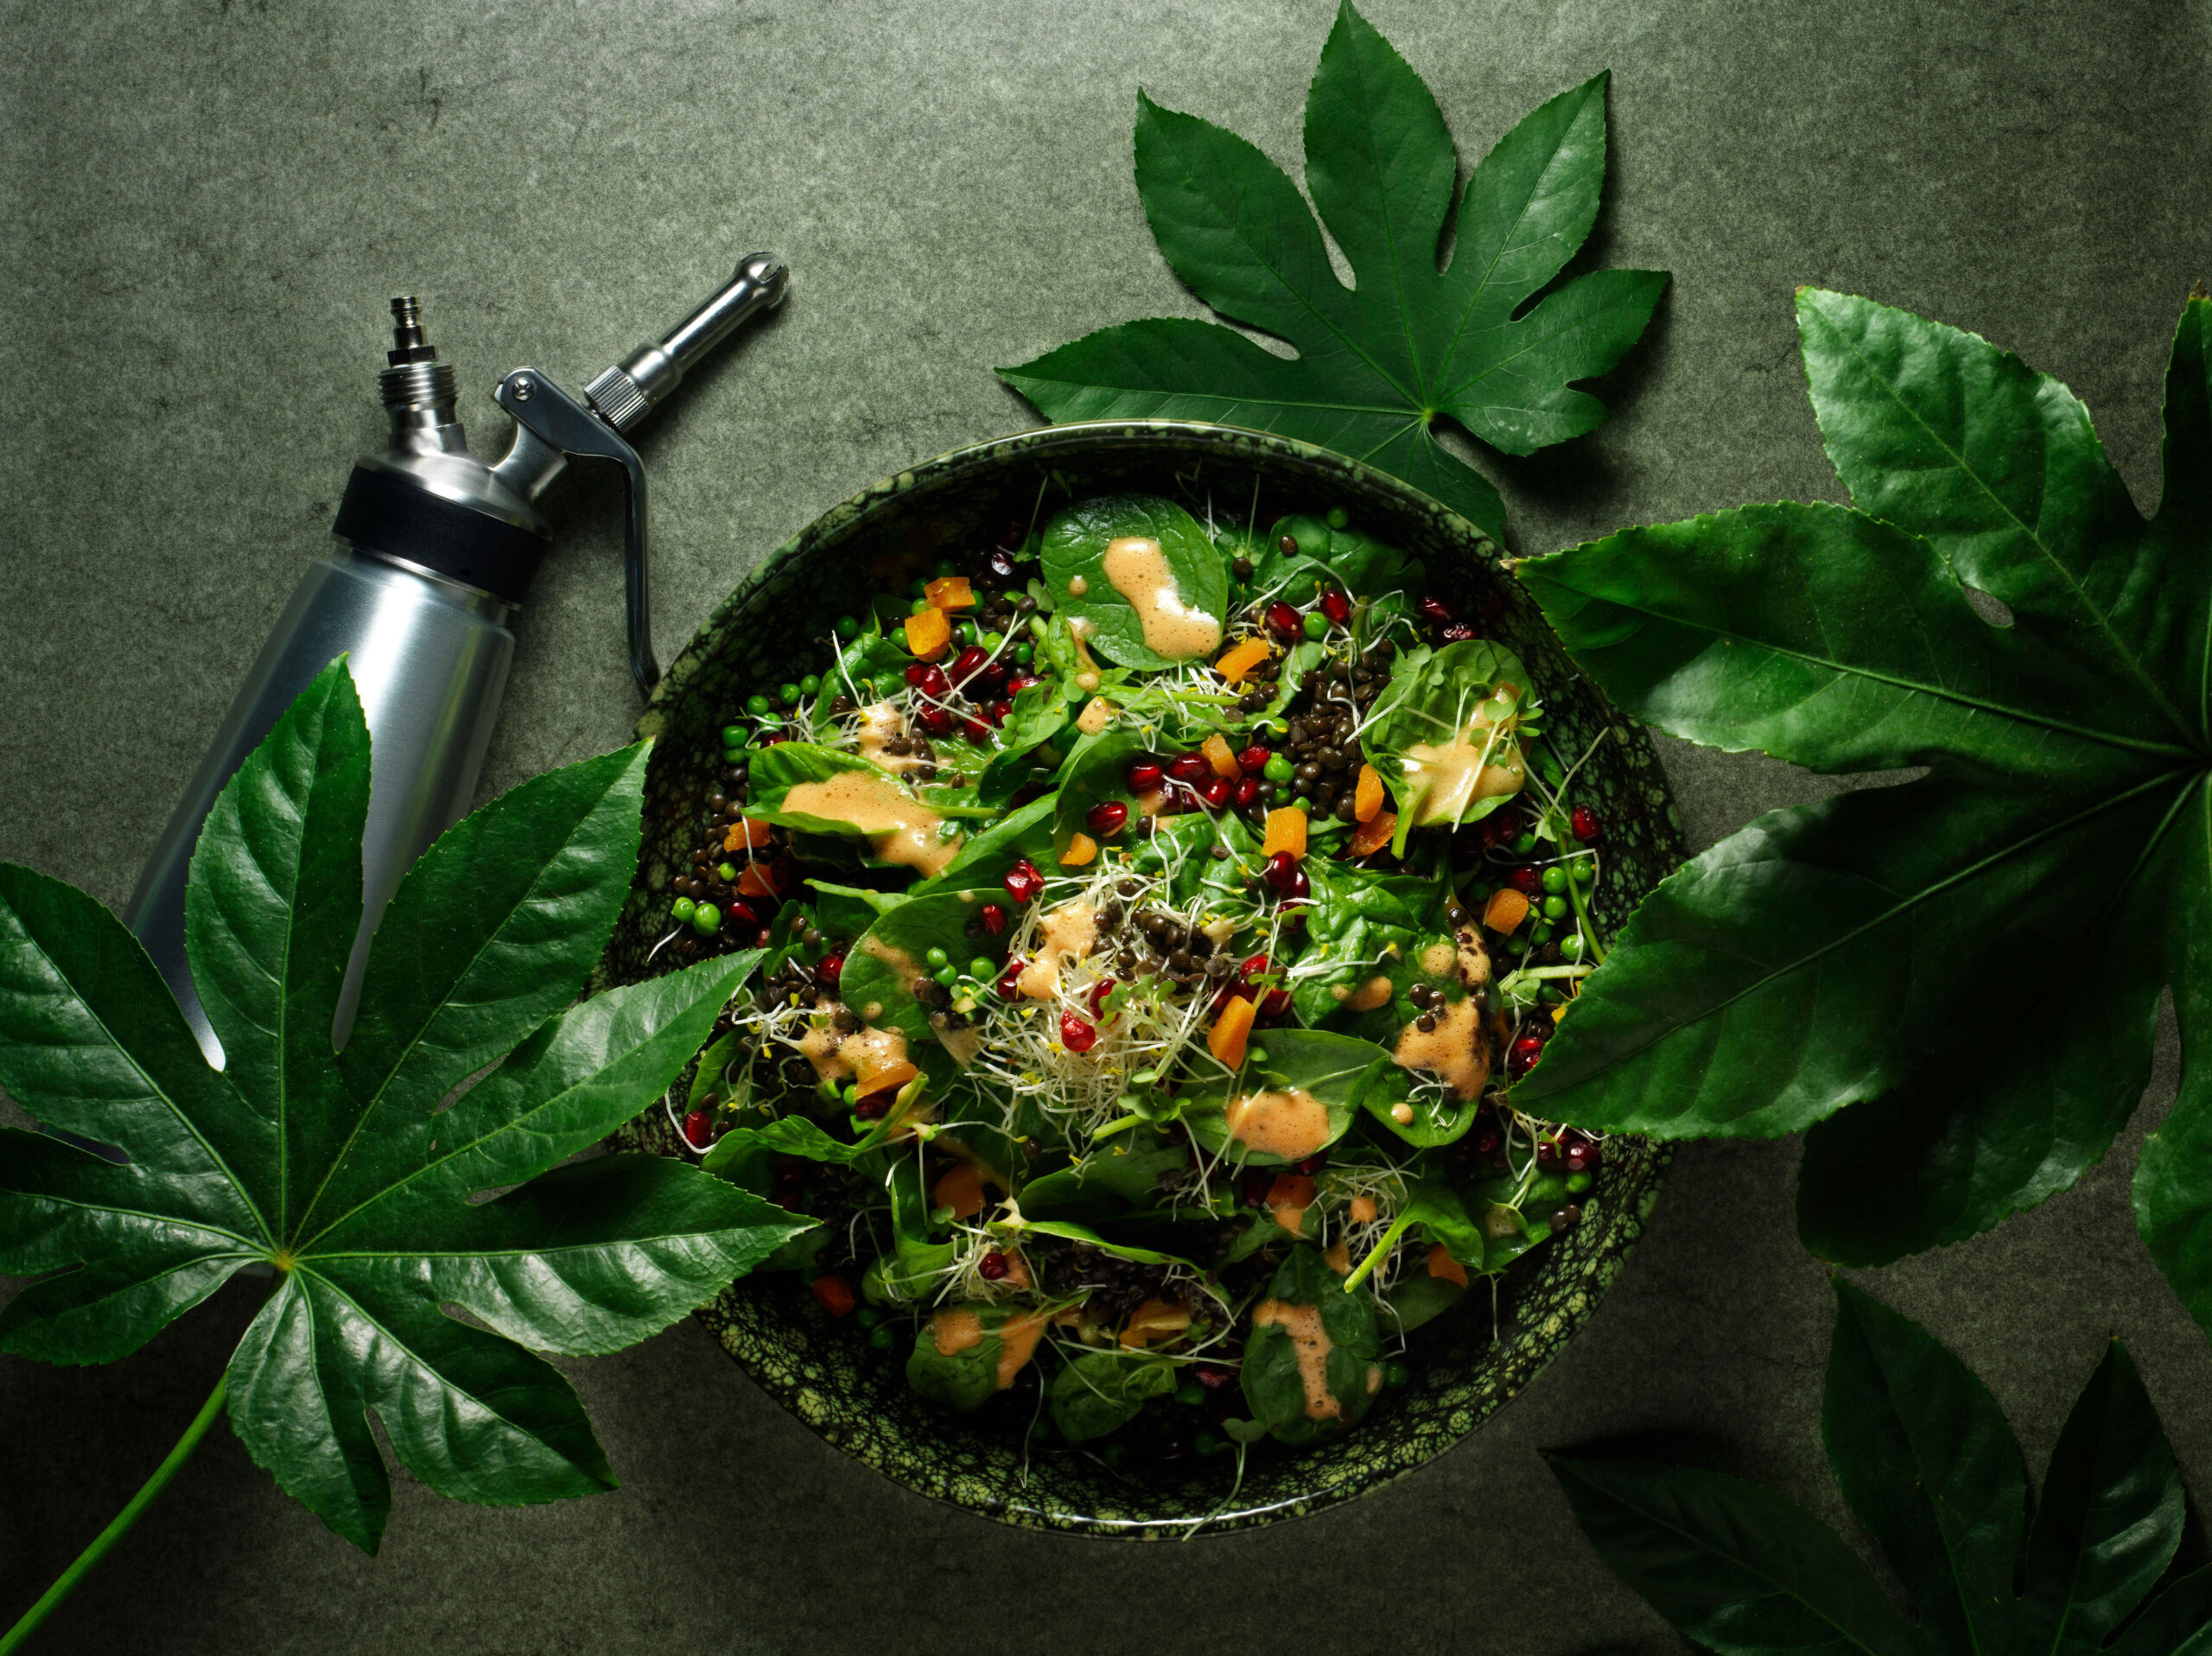 Creative food photo of SmartWhip recipe earth day salad made by STUDIO_M Amsterdam